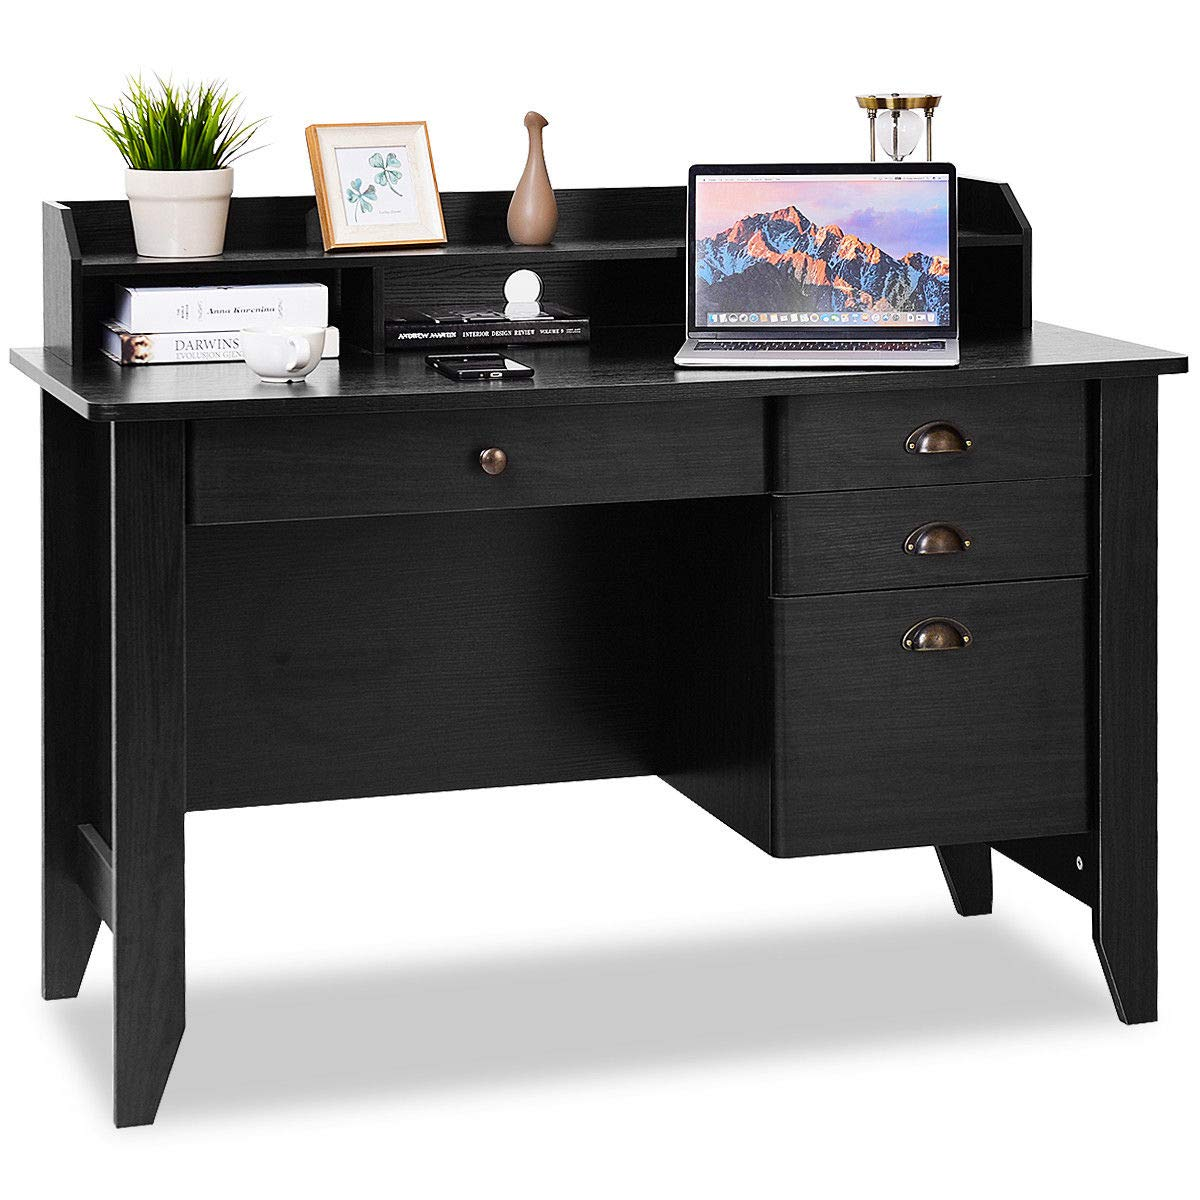 Tangkula Computer Desk, Home Office Desk, Wood Frame Vintage Style Student Table with Drawers & Bookshelf, PC Laptop Notebook Desk, Spacious Workstation Writing Study Table (Black)